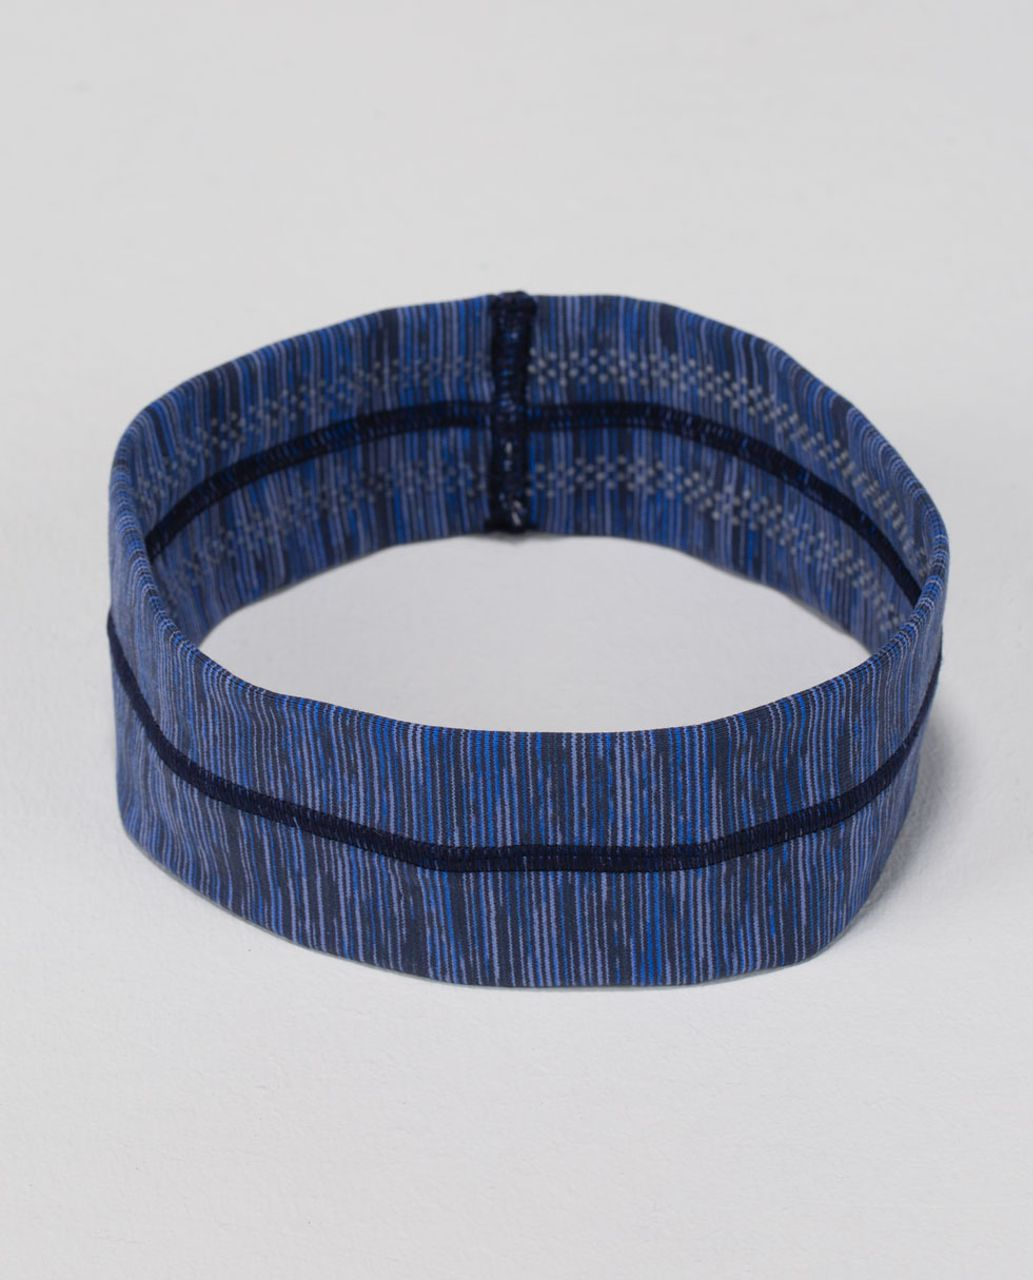 Lululemon Fly Away Tamer Headband - Wee Are From Space Cadet Blue